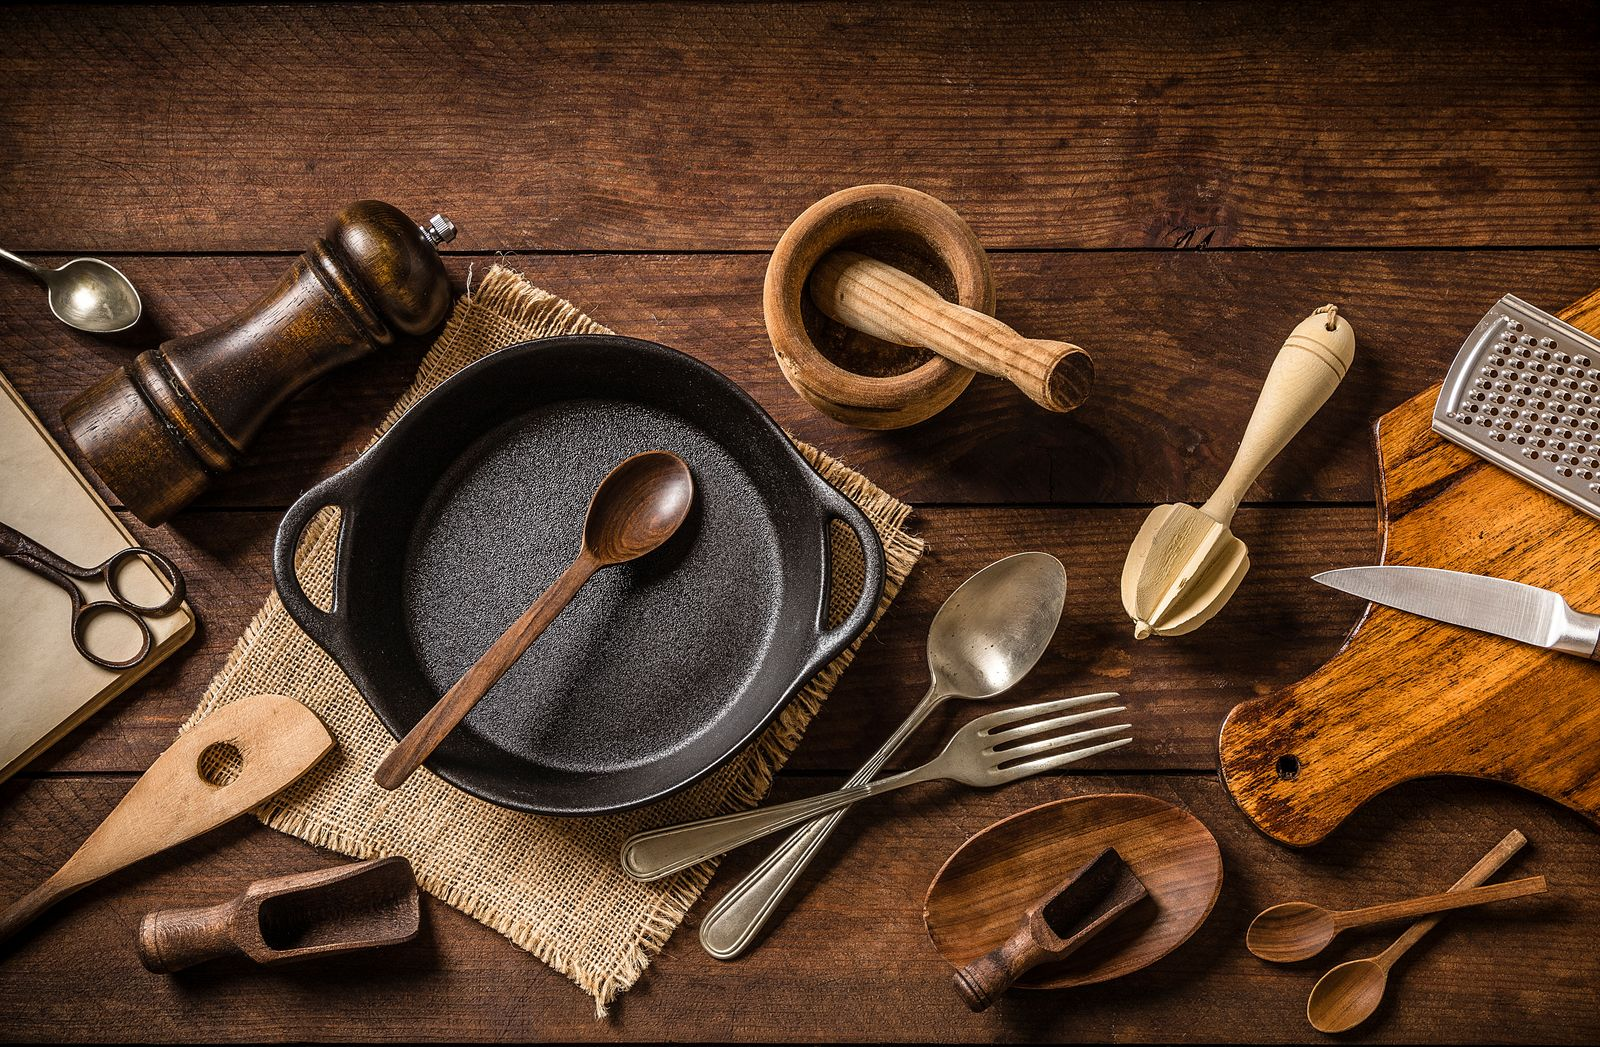 Various kinds of rustic kitchen utensils on a wooden plank